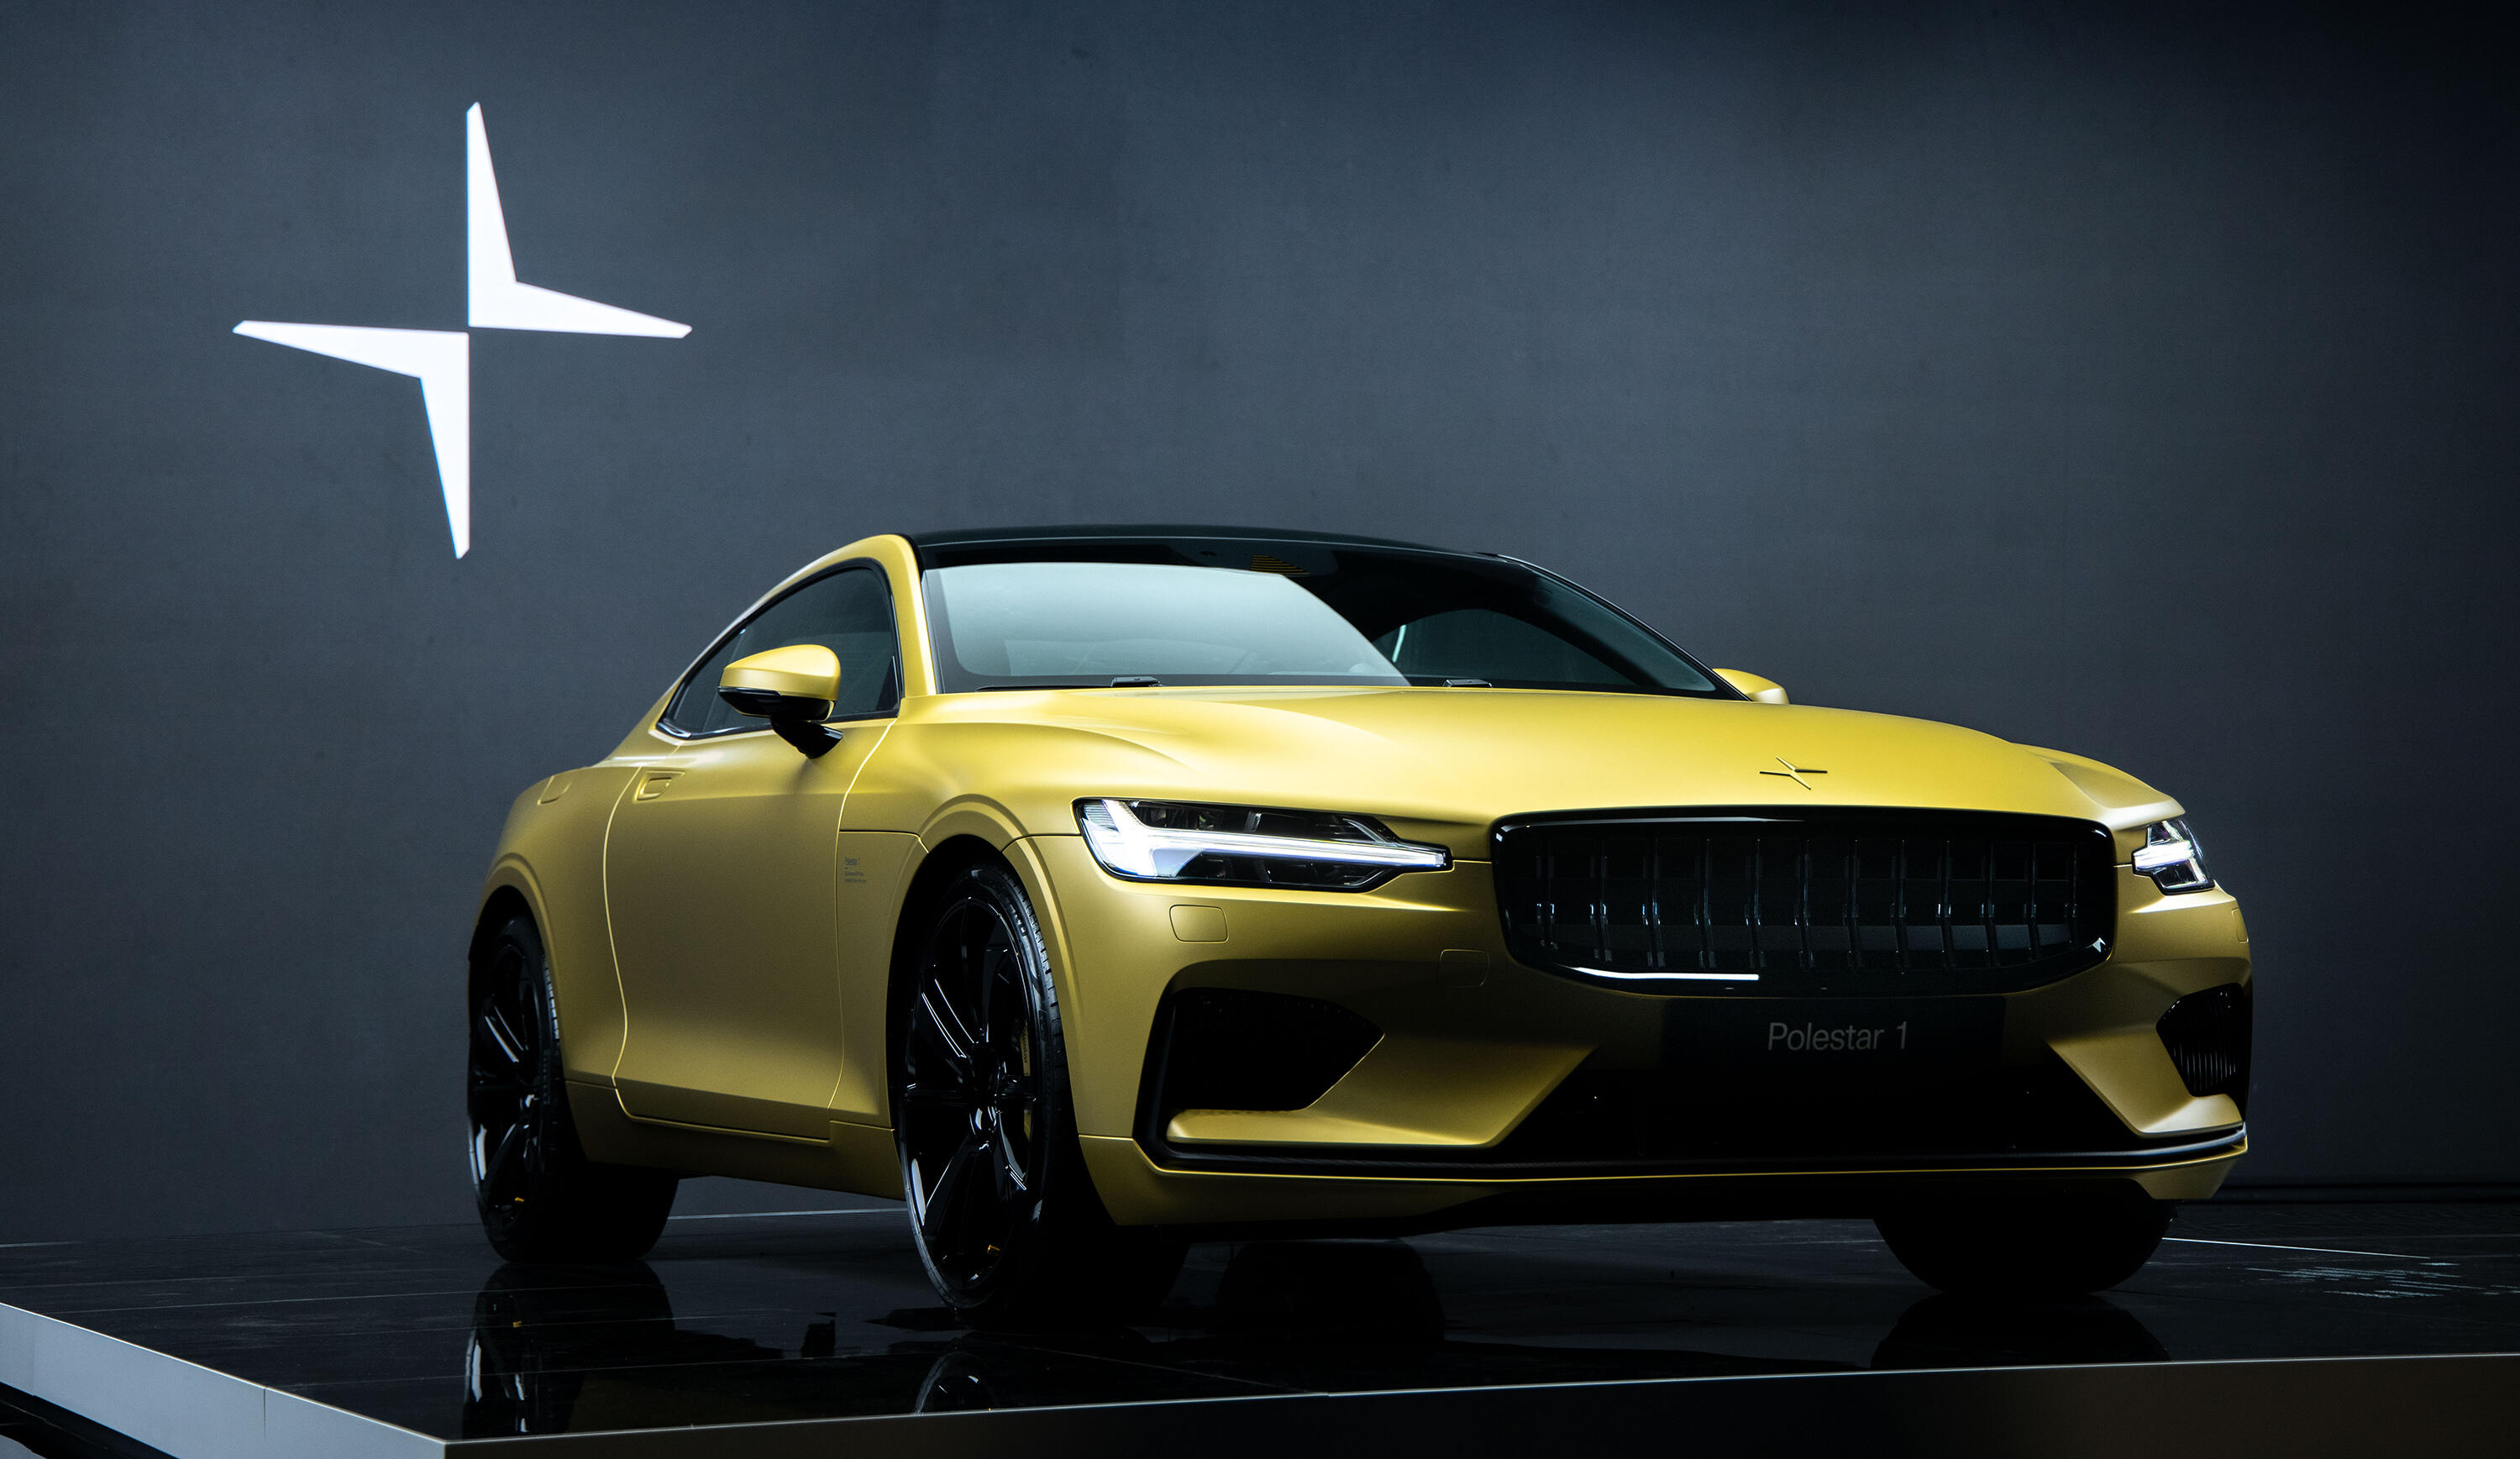 2021 Polestar 1 Special Edition brings the gold standard     - Roadshow